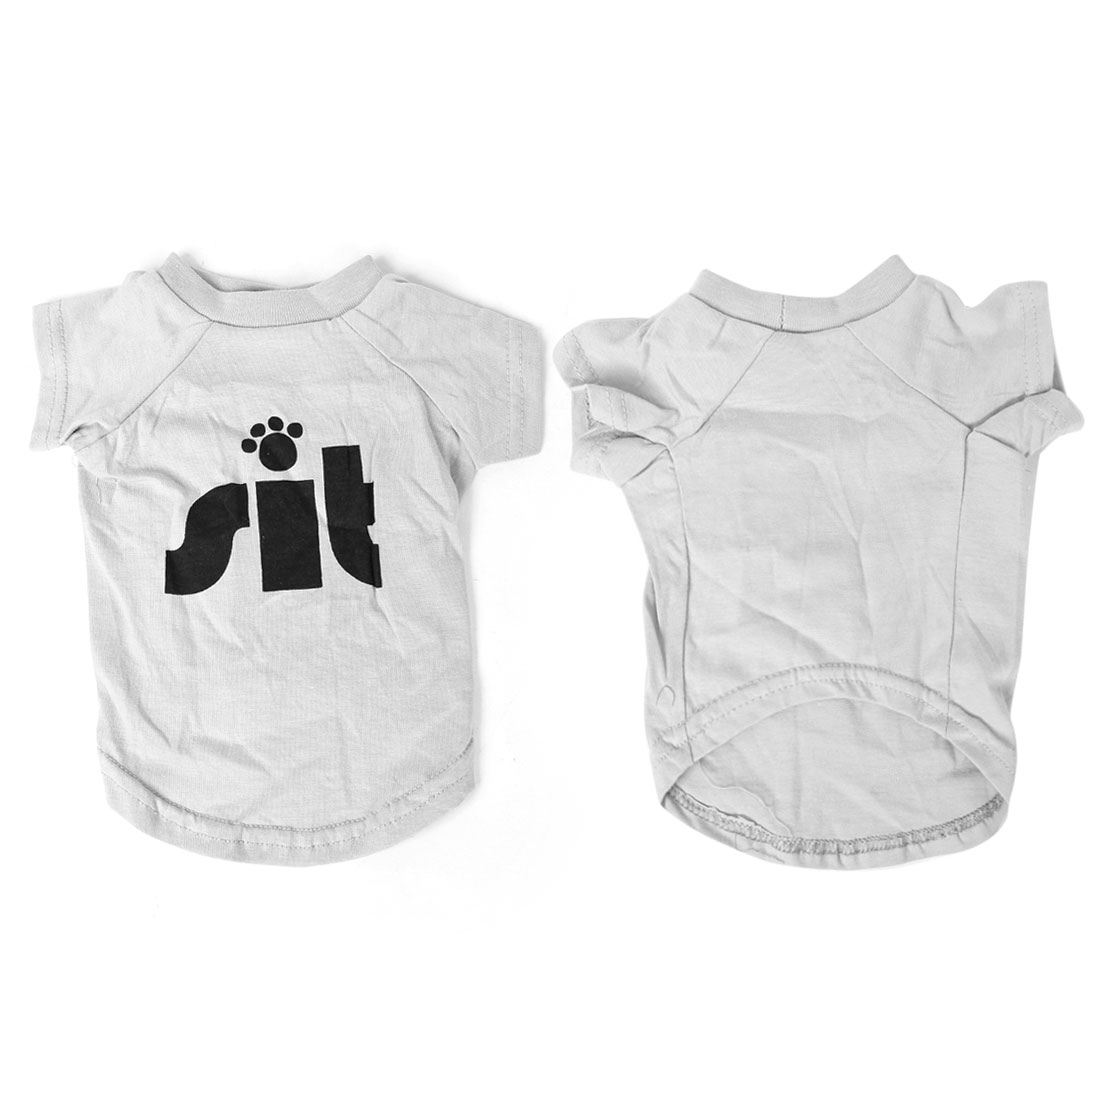 Claw Pattern Dog Chihuahua Summer Tee Shirt Pet Puppy Clothes Gray M